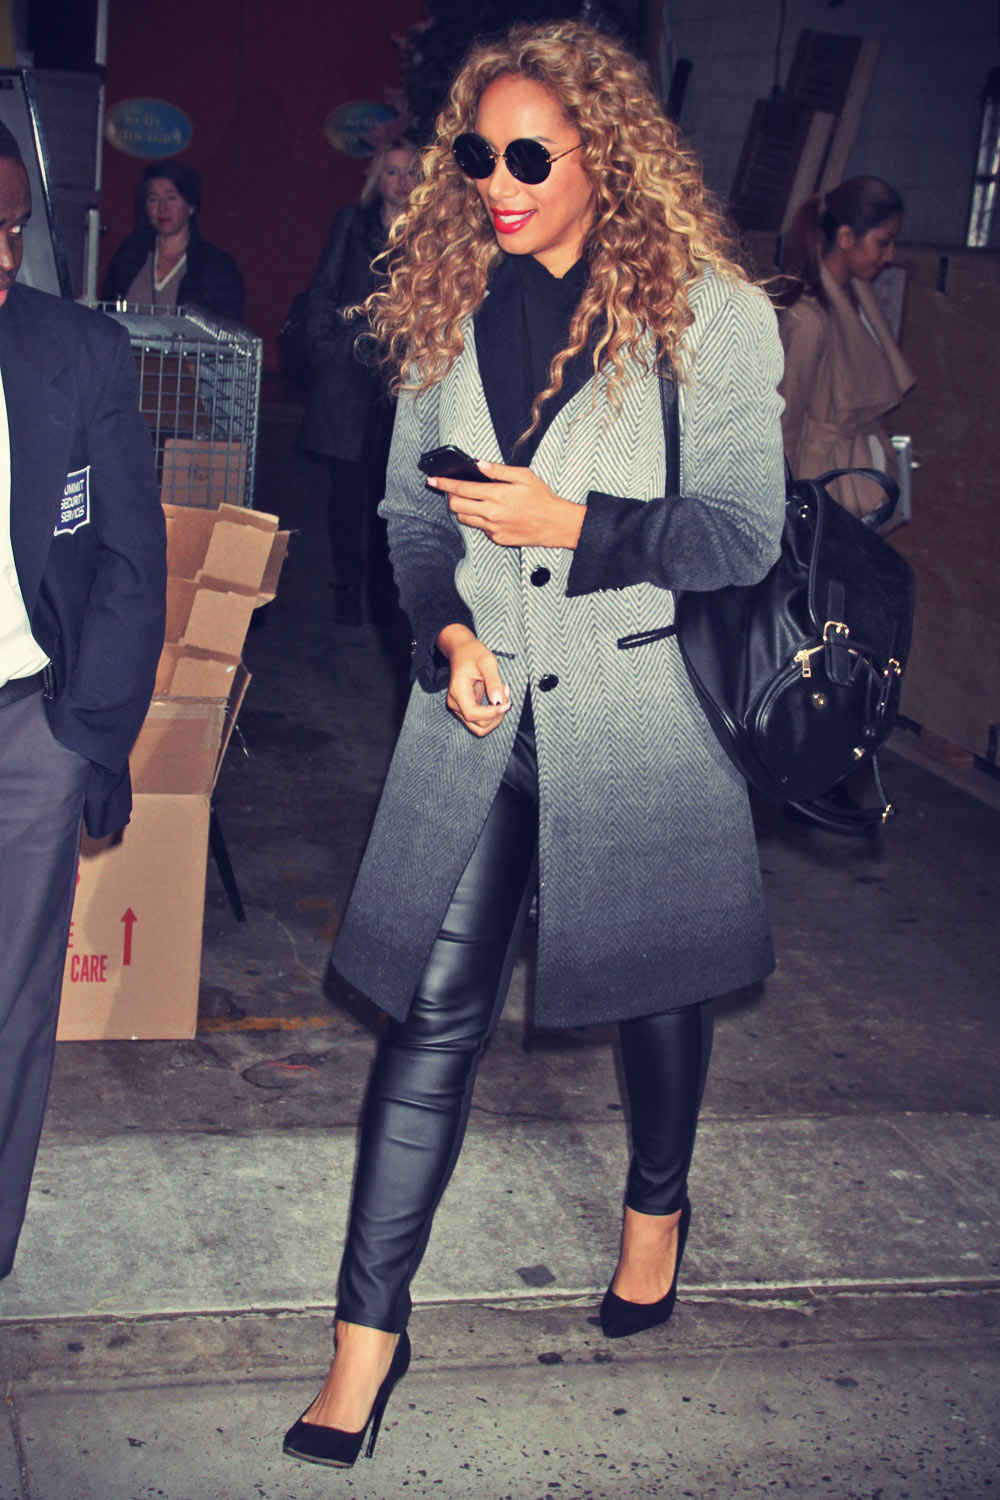 Leona Lewis out and about in NYC